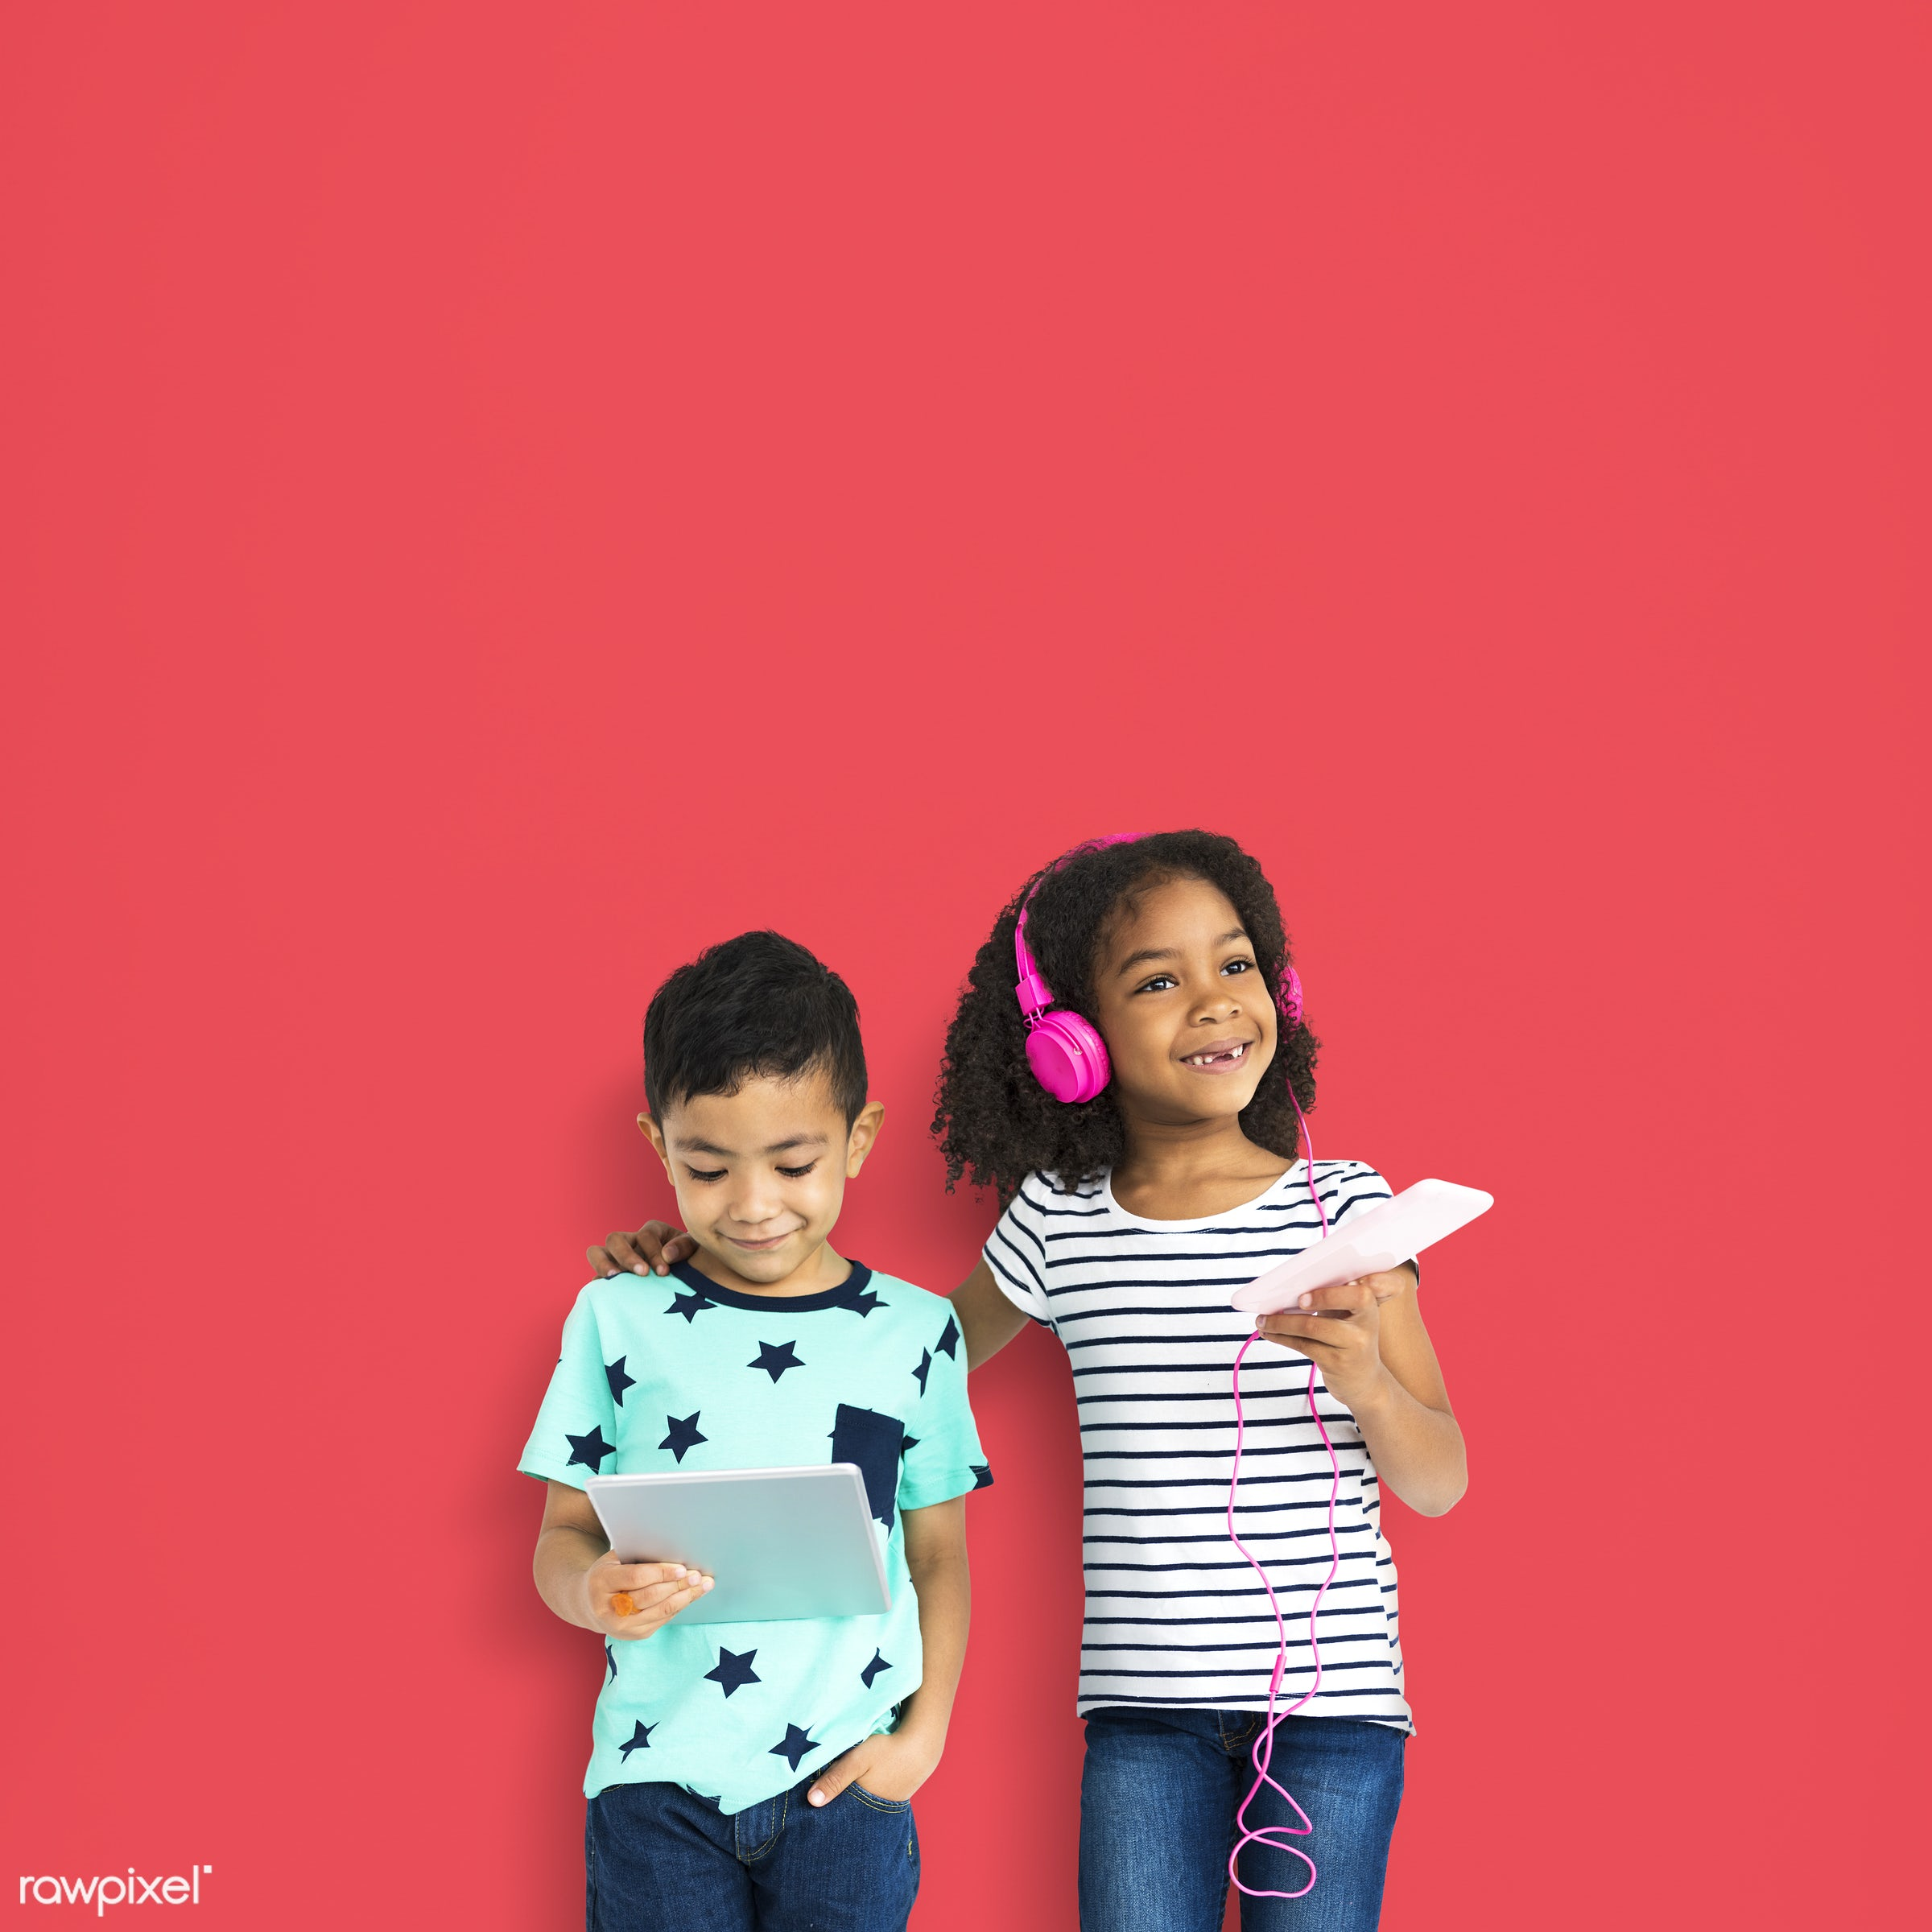 studio, expression, person, technology, little, recreation, people, together, friends, friendship, childhood, cheerful,...